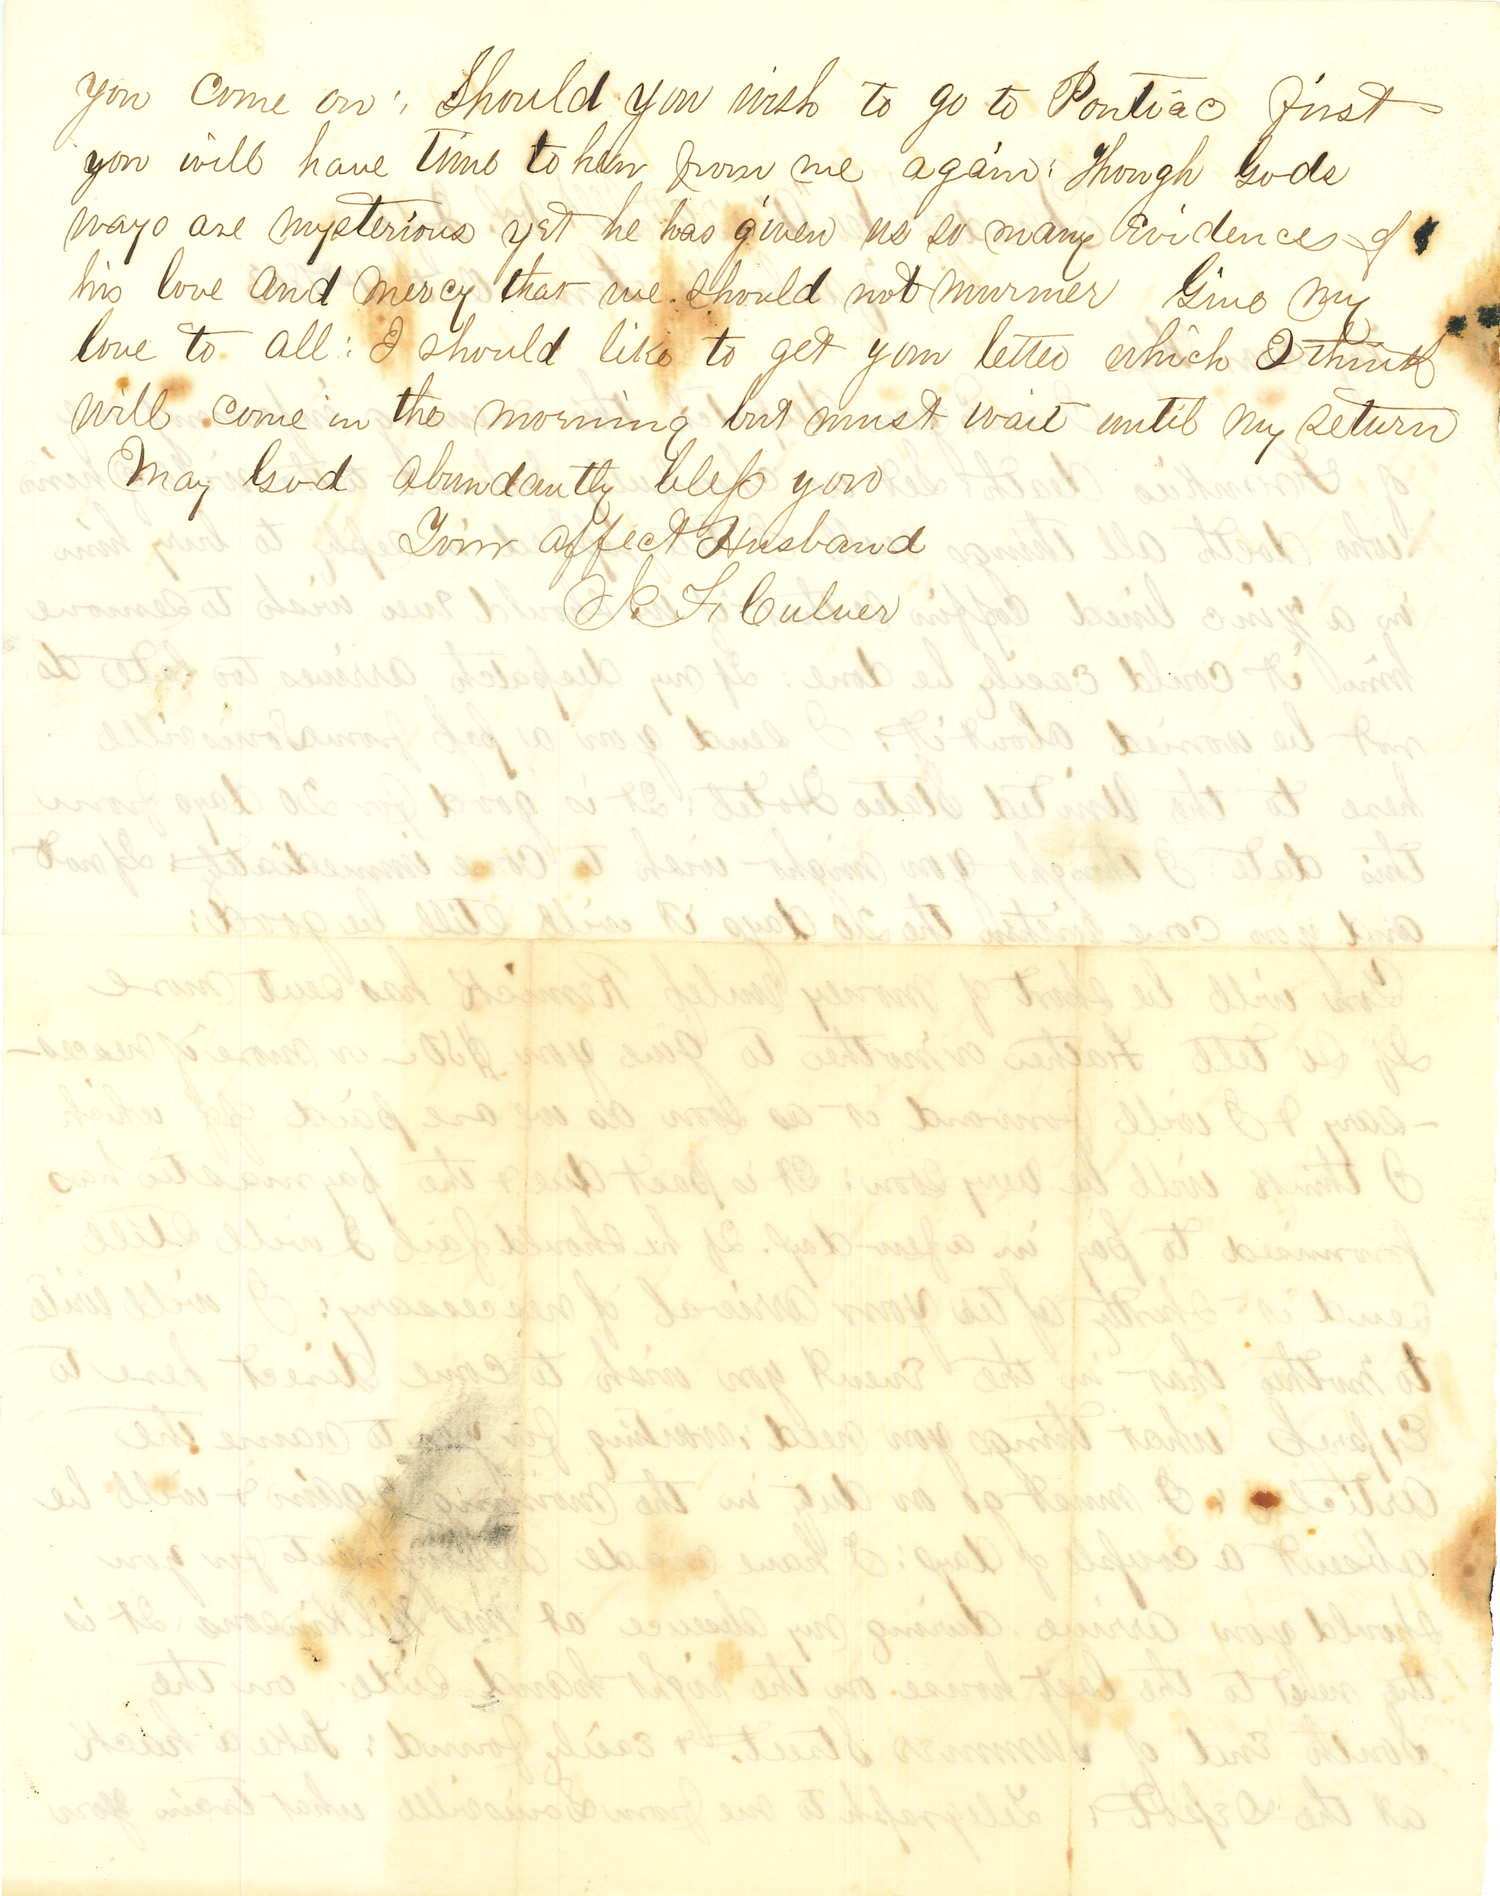 Joseph Culver Letter, October 31, 1863, Letter 2, Page 2